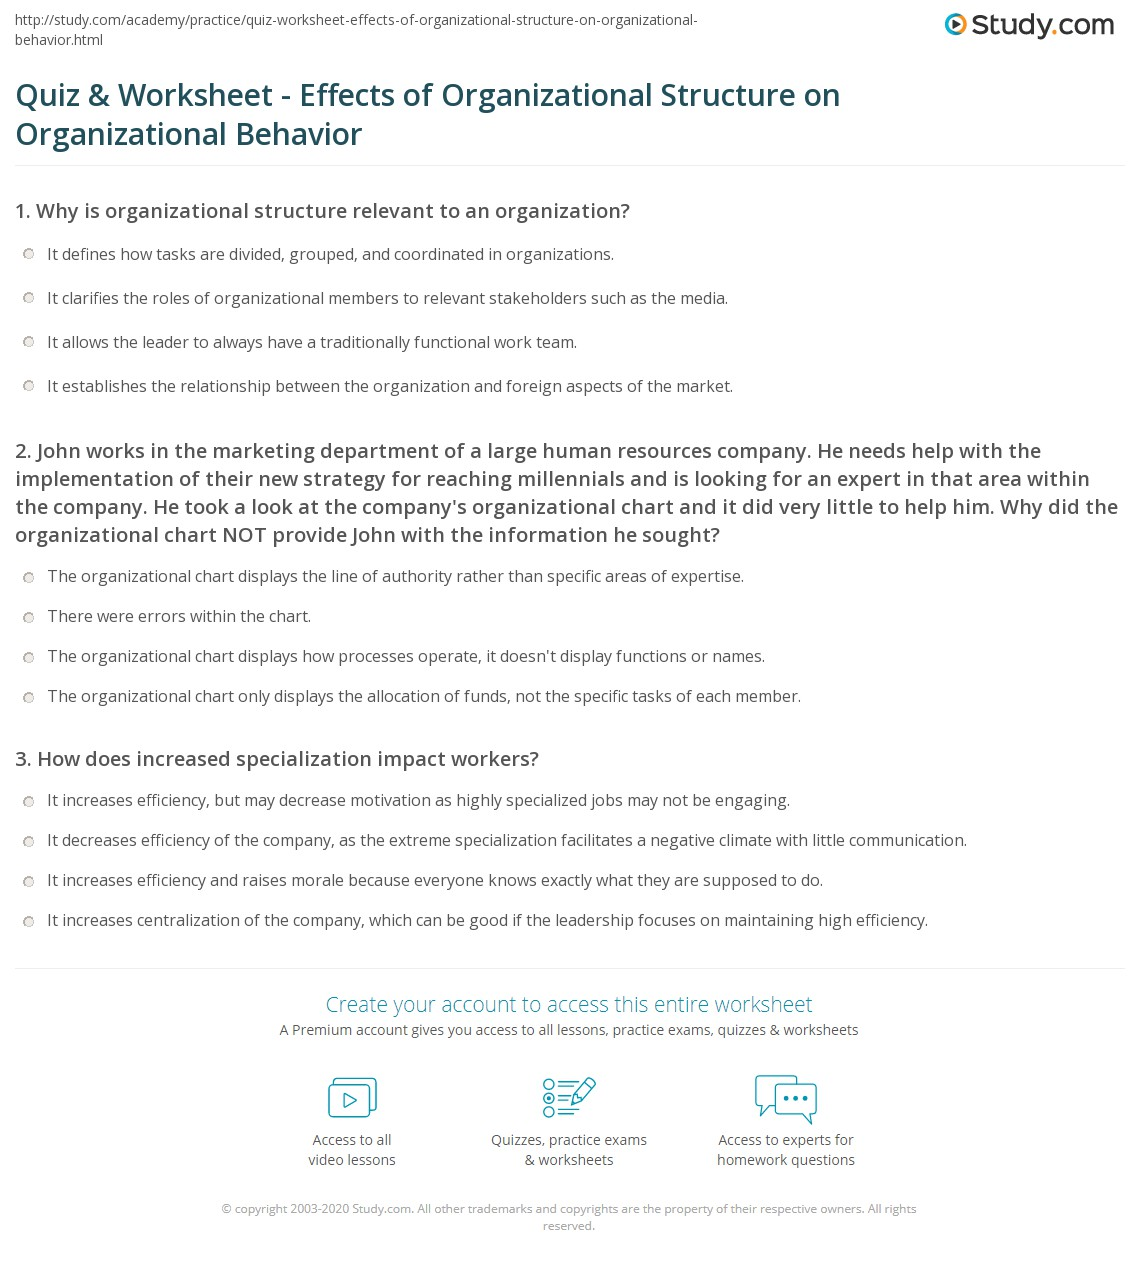 analysis the structure of corporate Amazon inc report 2018 contains a full analysis of amazon organizational structure the report illustrates the application of the major analytical strategic frameworks in business studies such as swot, pestel, porter's five forces, value chain analysis, ansoff matrix and mckinsey 7s model on amazon.